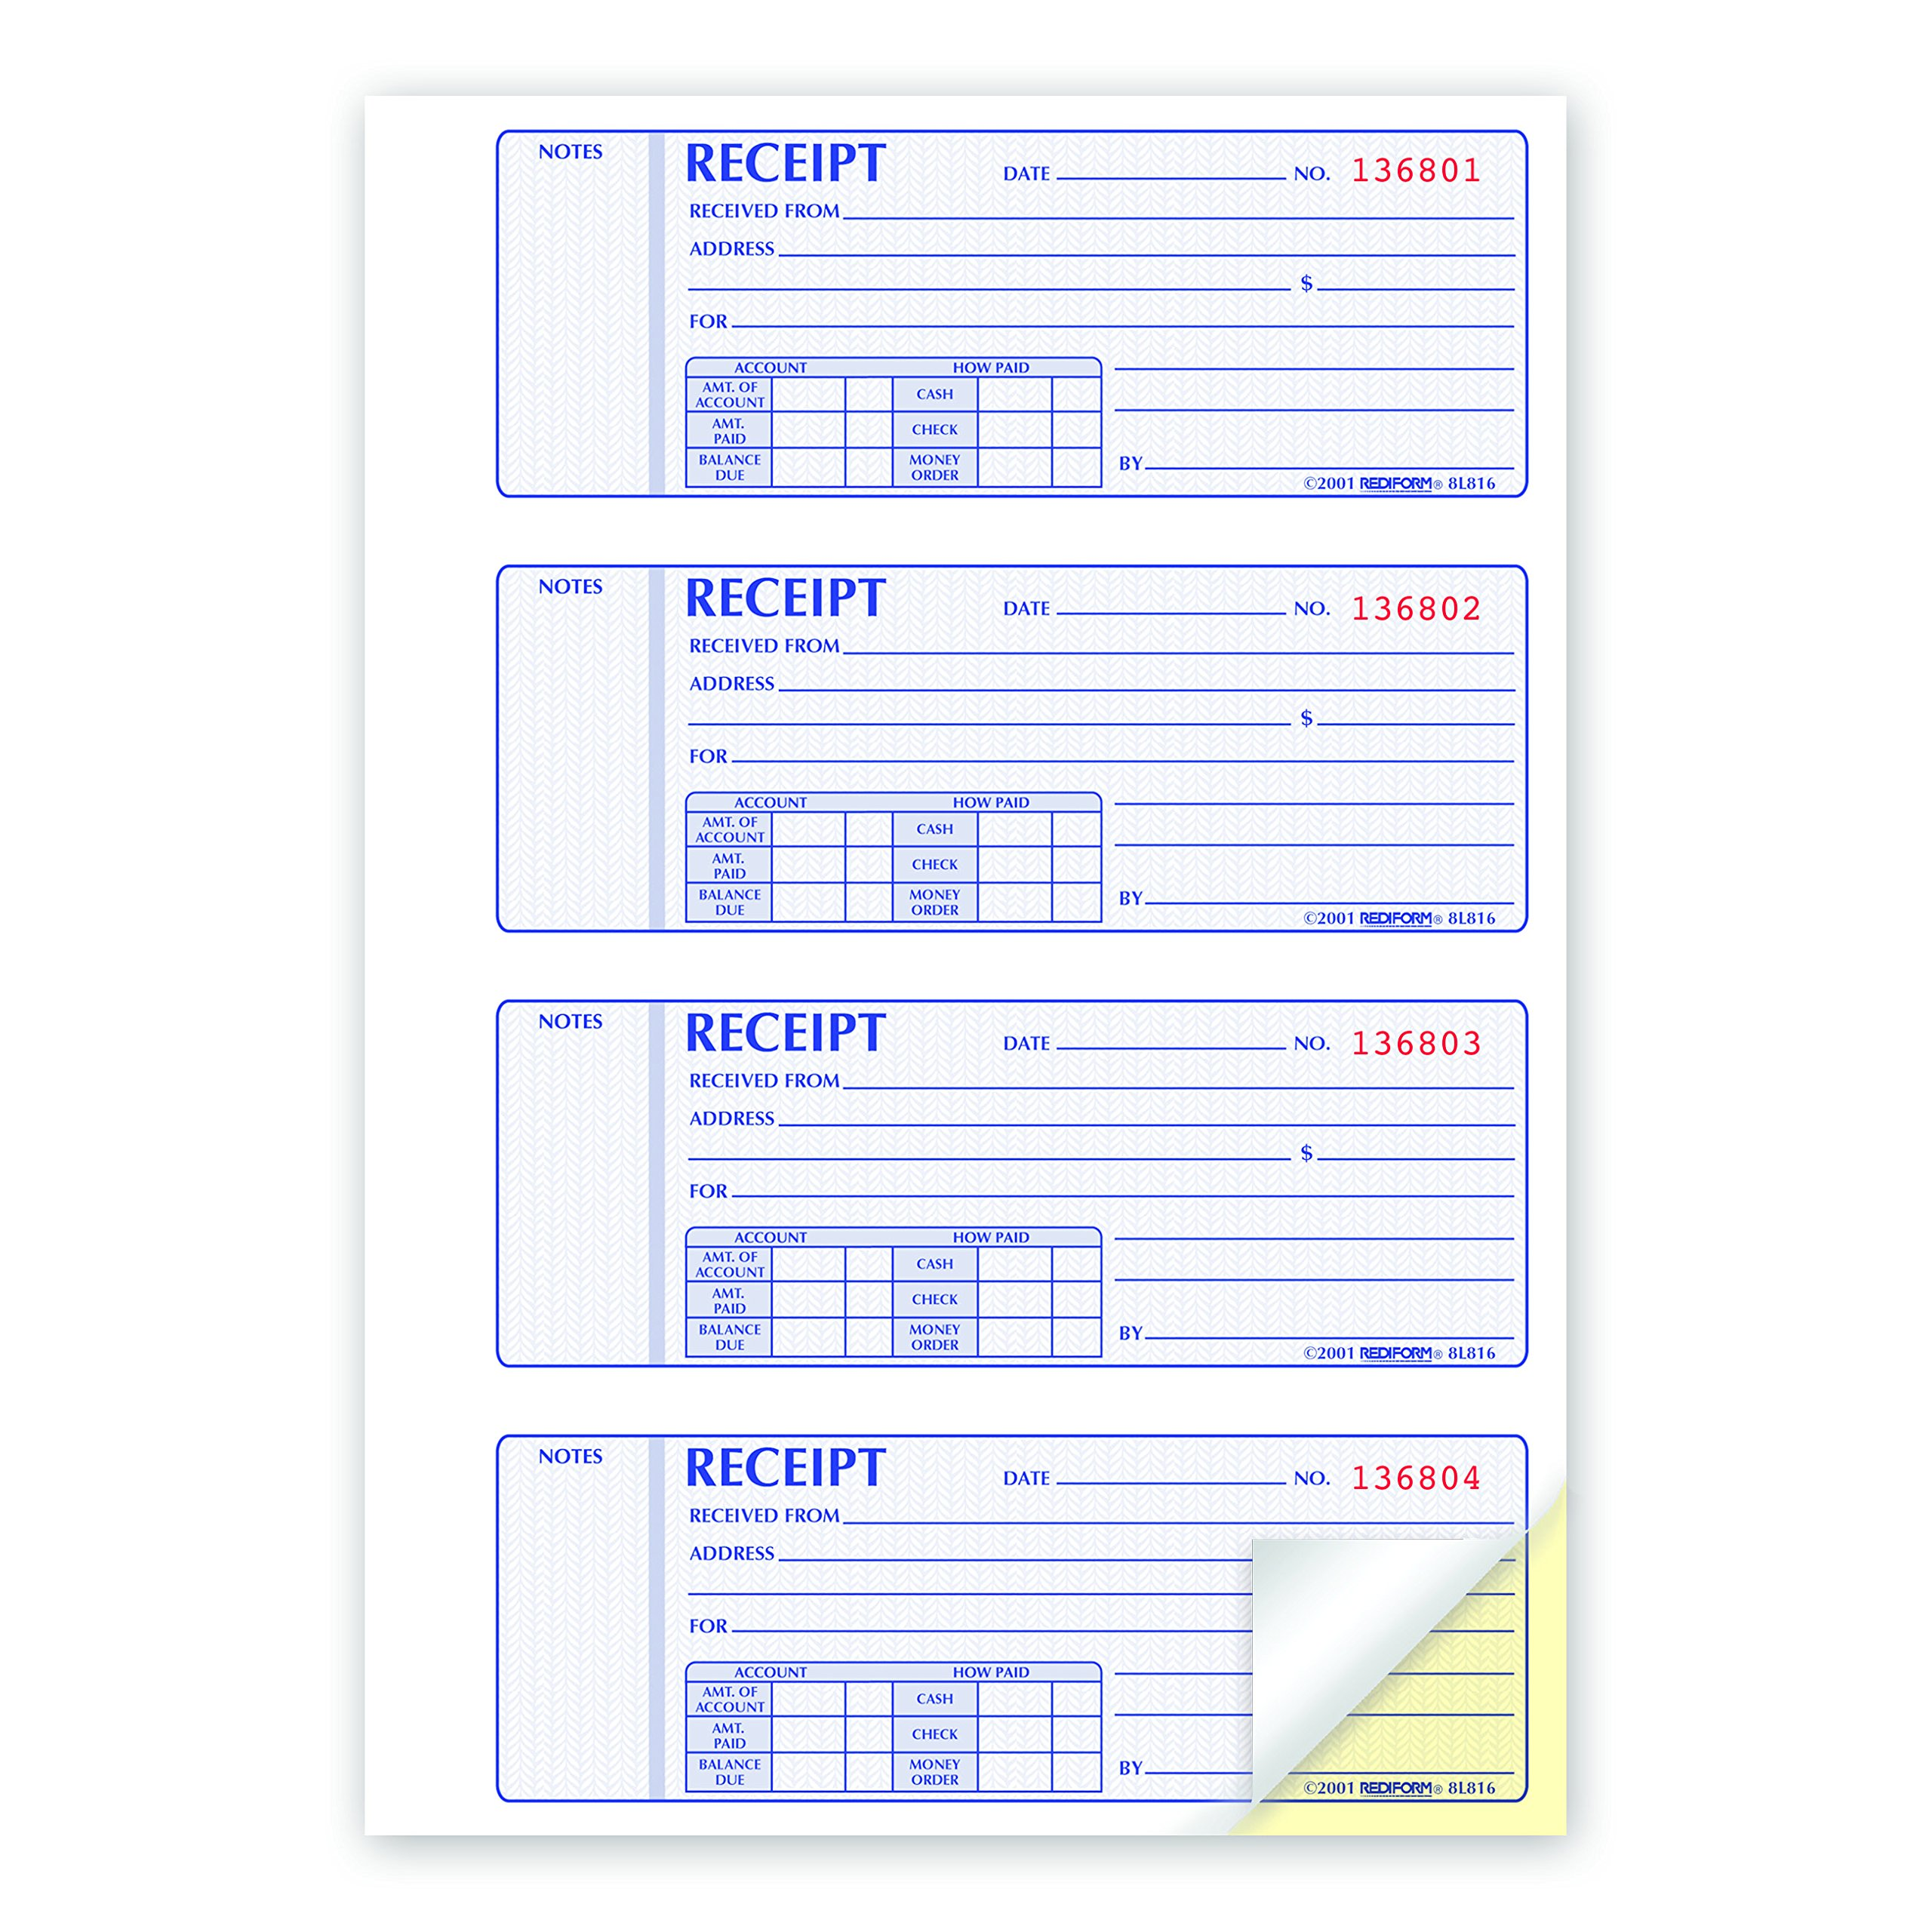 REDIFORM Money Receipt Books Black Print Carbonless, Duplicate, 400 Sets per Book (8L816) by Rediform (Image #2)